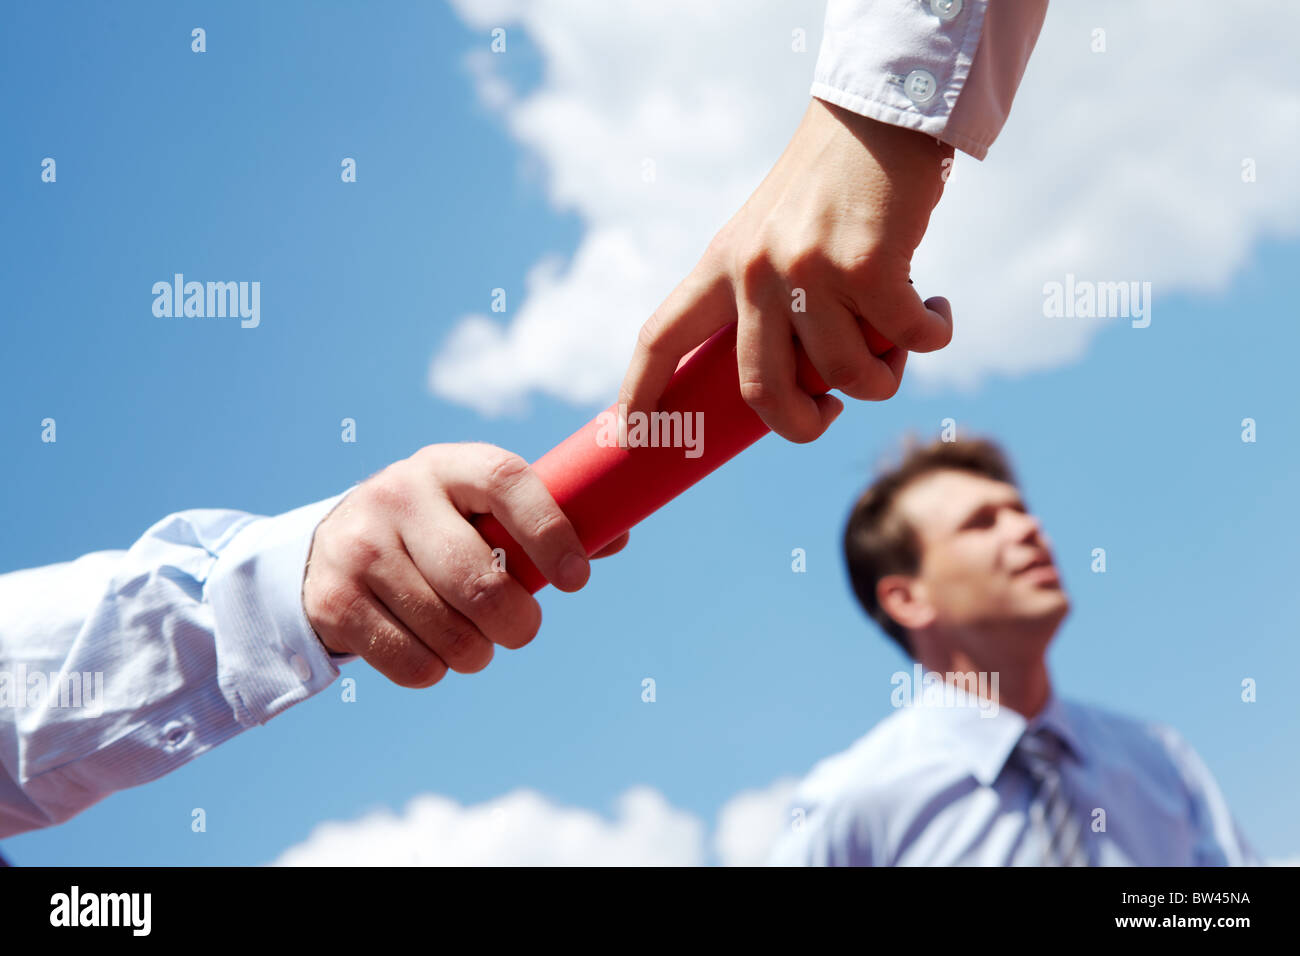 Photo of business people hands passing baton during race - Stock Image